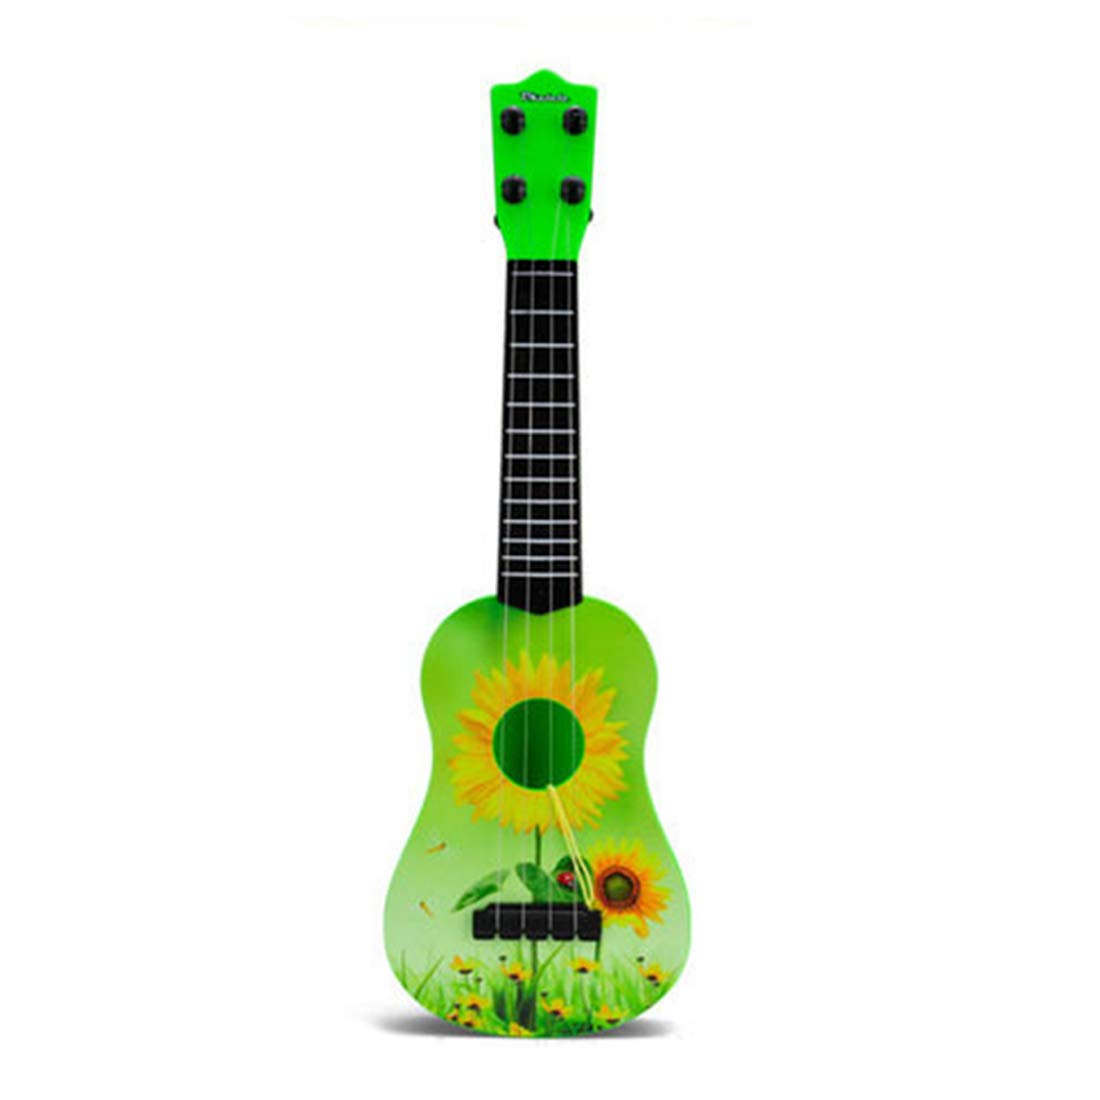 YAHAMA Kids Guitar Ukulele Guitar Toy for Kids Musical Instruments for Children Age 3